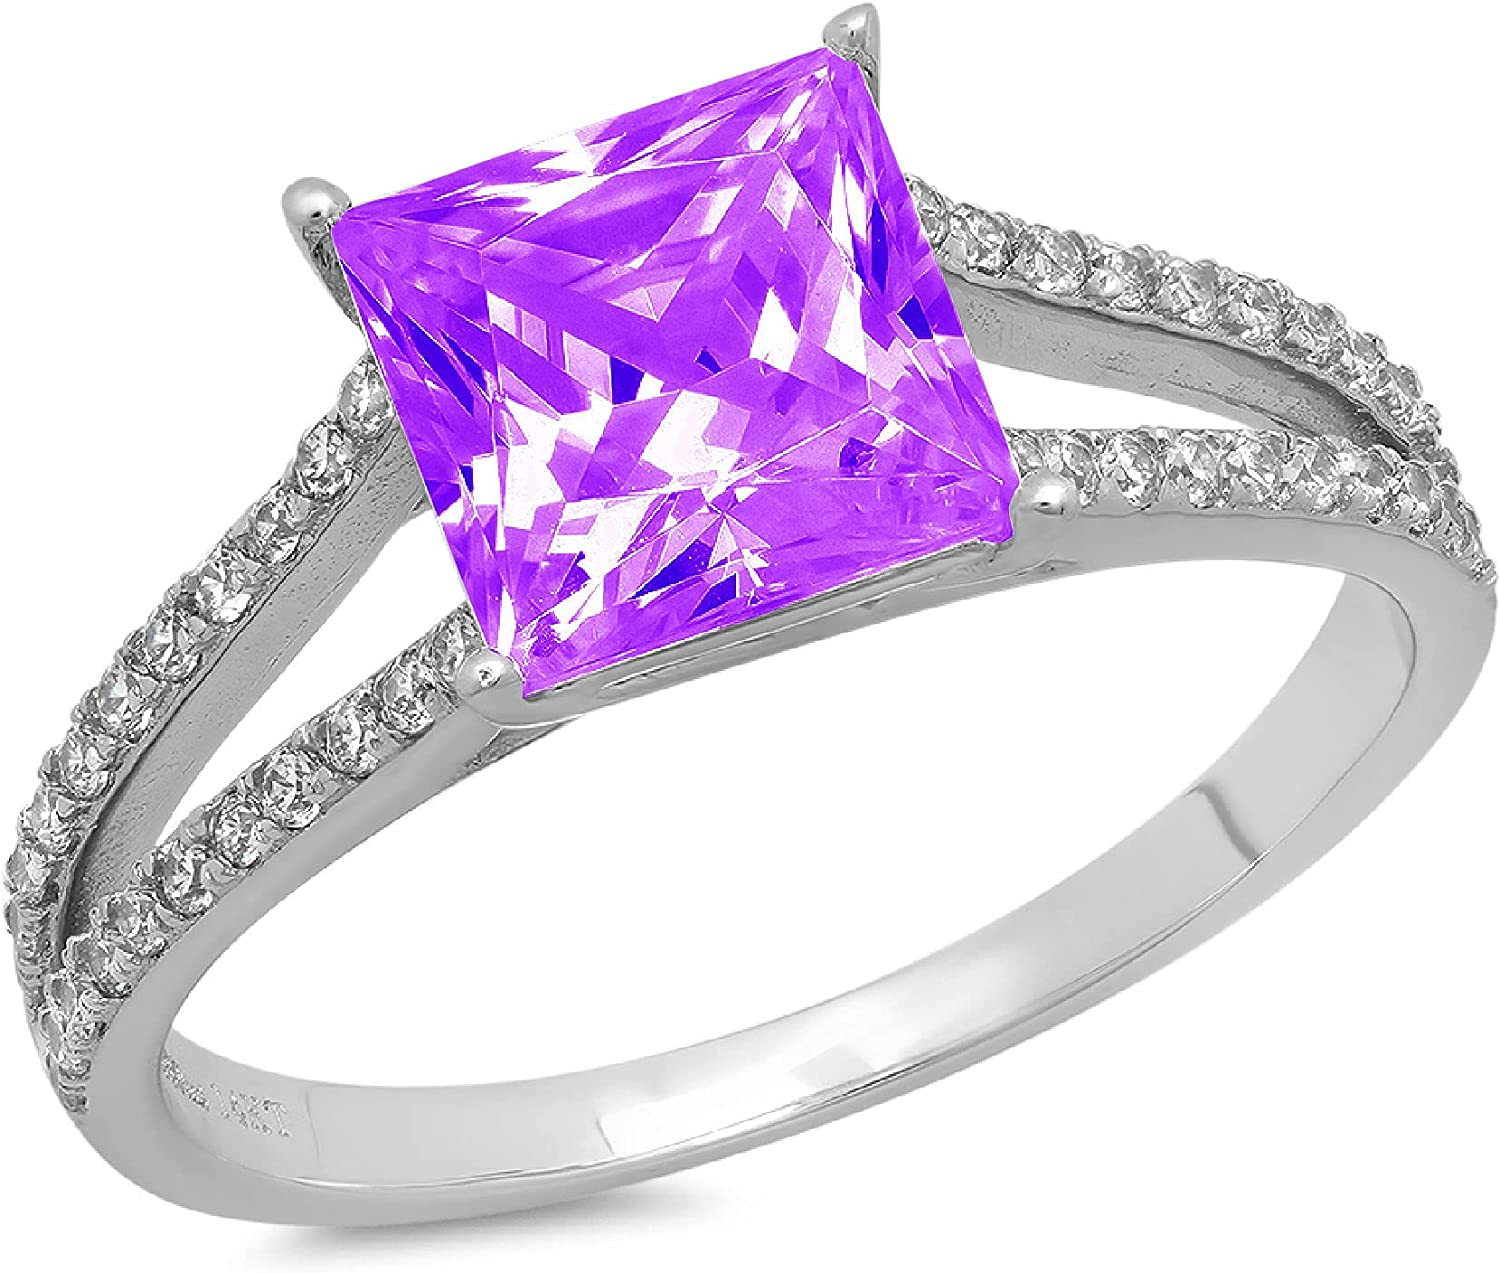 2.36ct Princess Cut Solitaire with Accent split shank Natural Purple Amethyst Gem Stone Ideal VVS1 Engagement Promise Statement Anniversary Bridal Wedding ring 14k White Gold